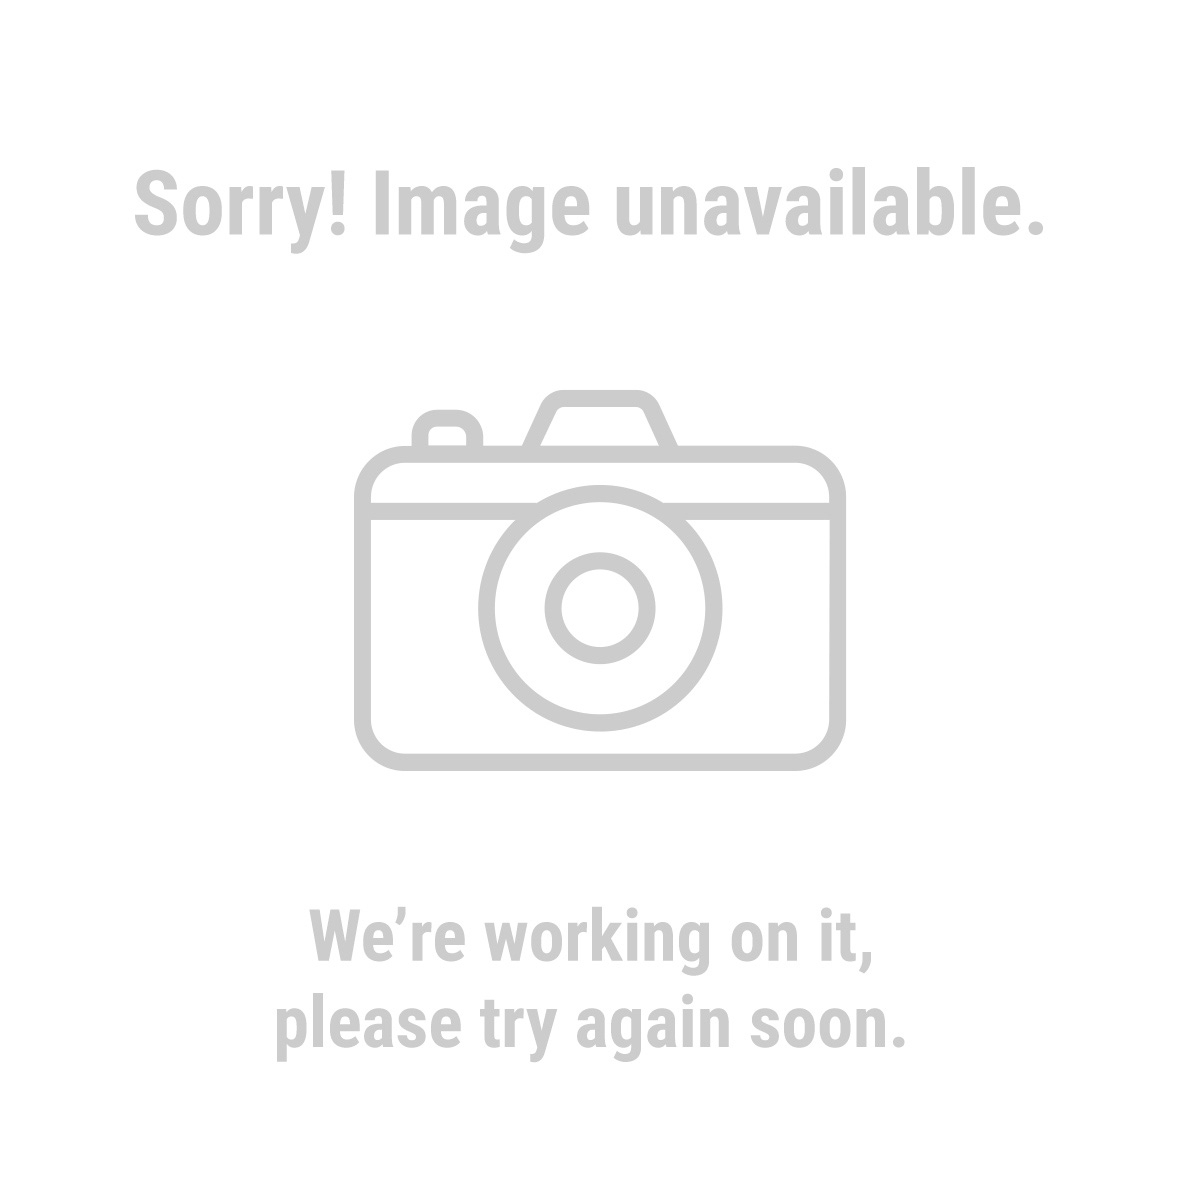 Chicago Electric Welding Systems 93804 MIG 200 Welder